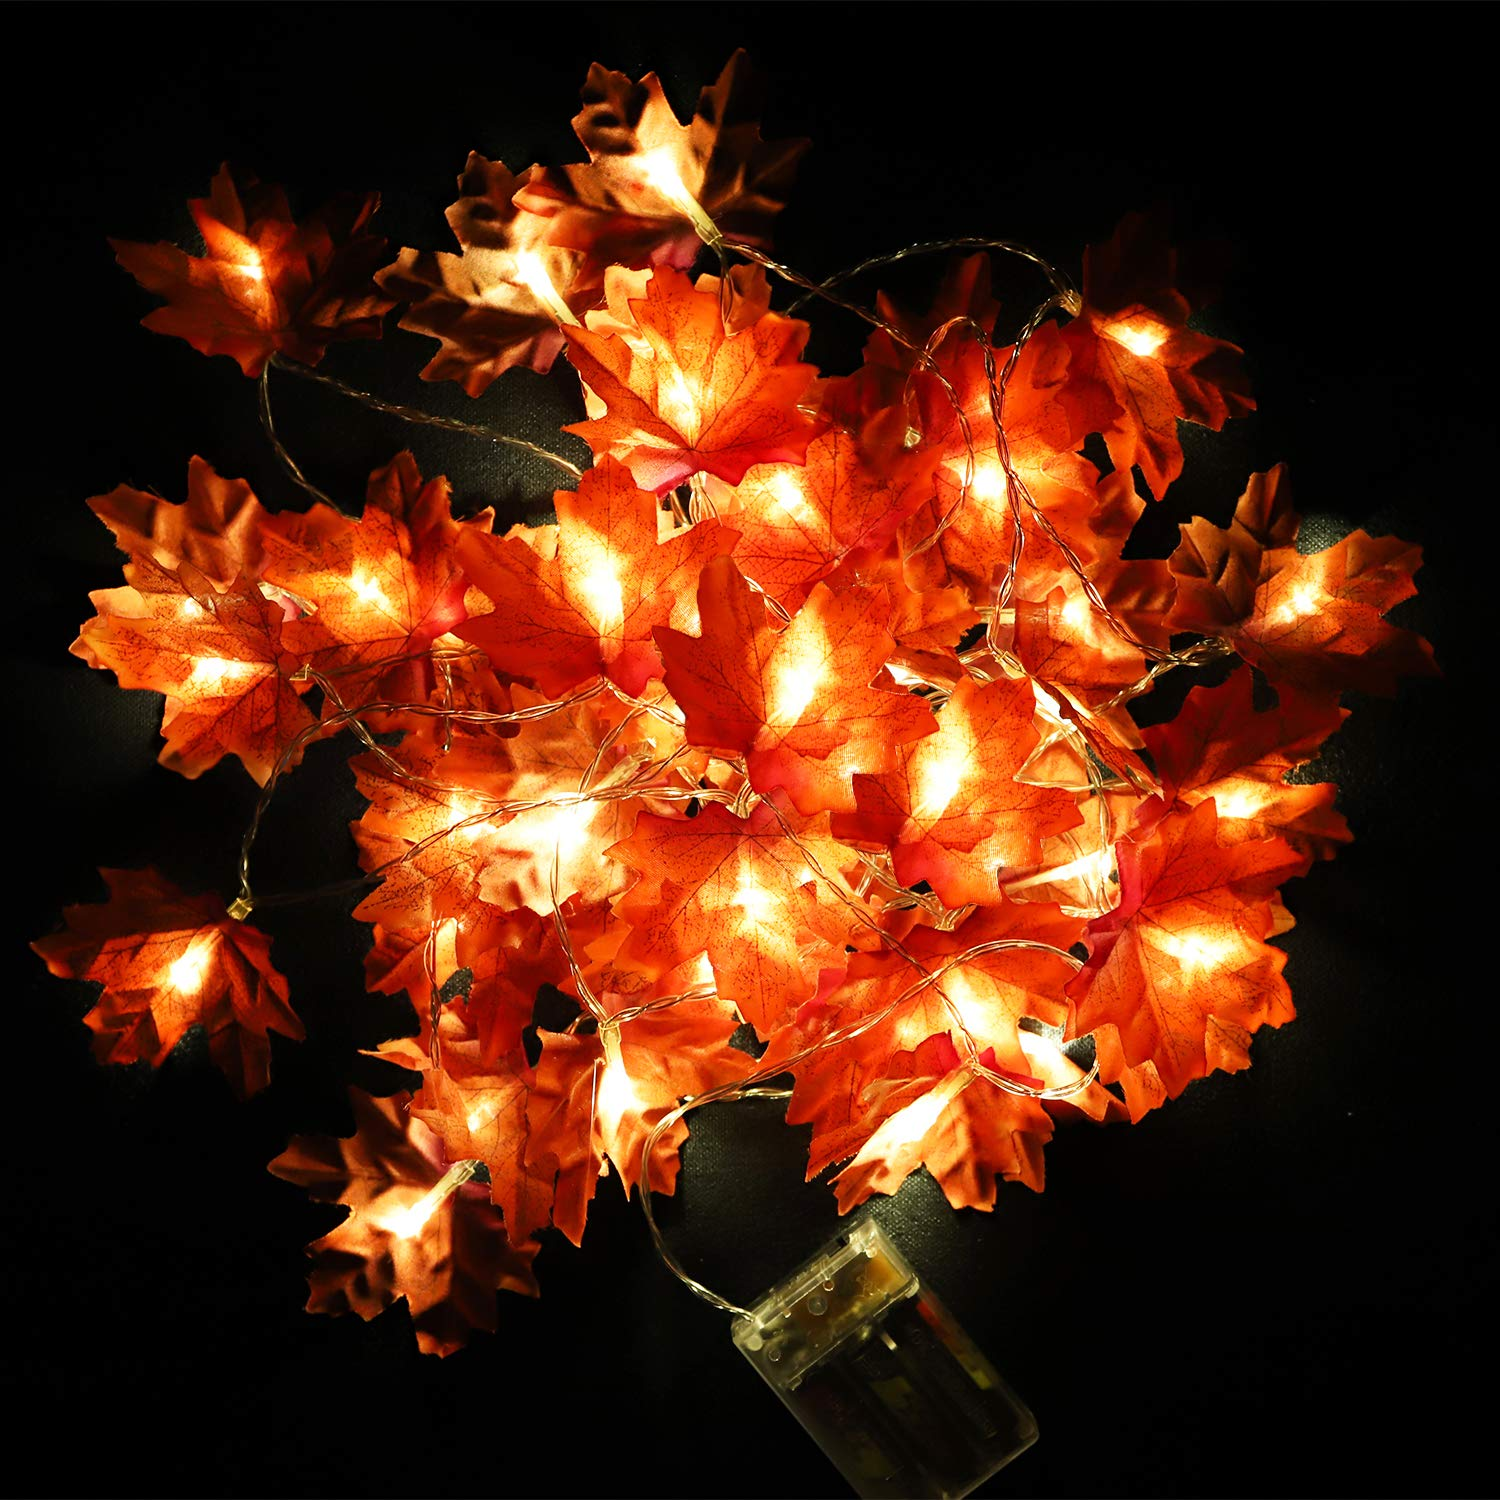 R.HORSE 40 LEDs Maple Leaves Garland String Lights 20 Feet for Home Decorations, Maple Leaf String Lights Fall Decoration Seasonal Lights for Party Halloween Thanksgiving Christmas (Warm White)